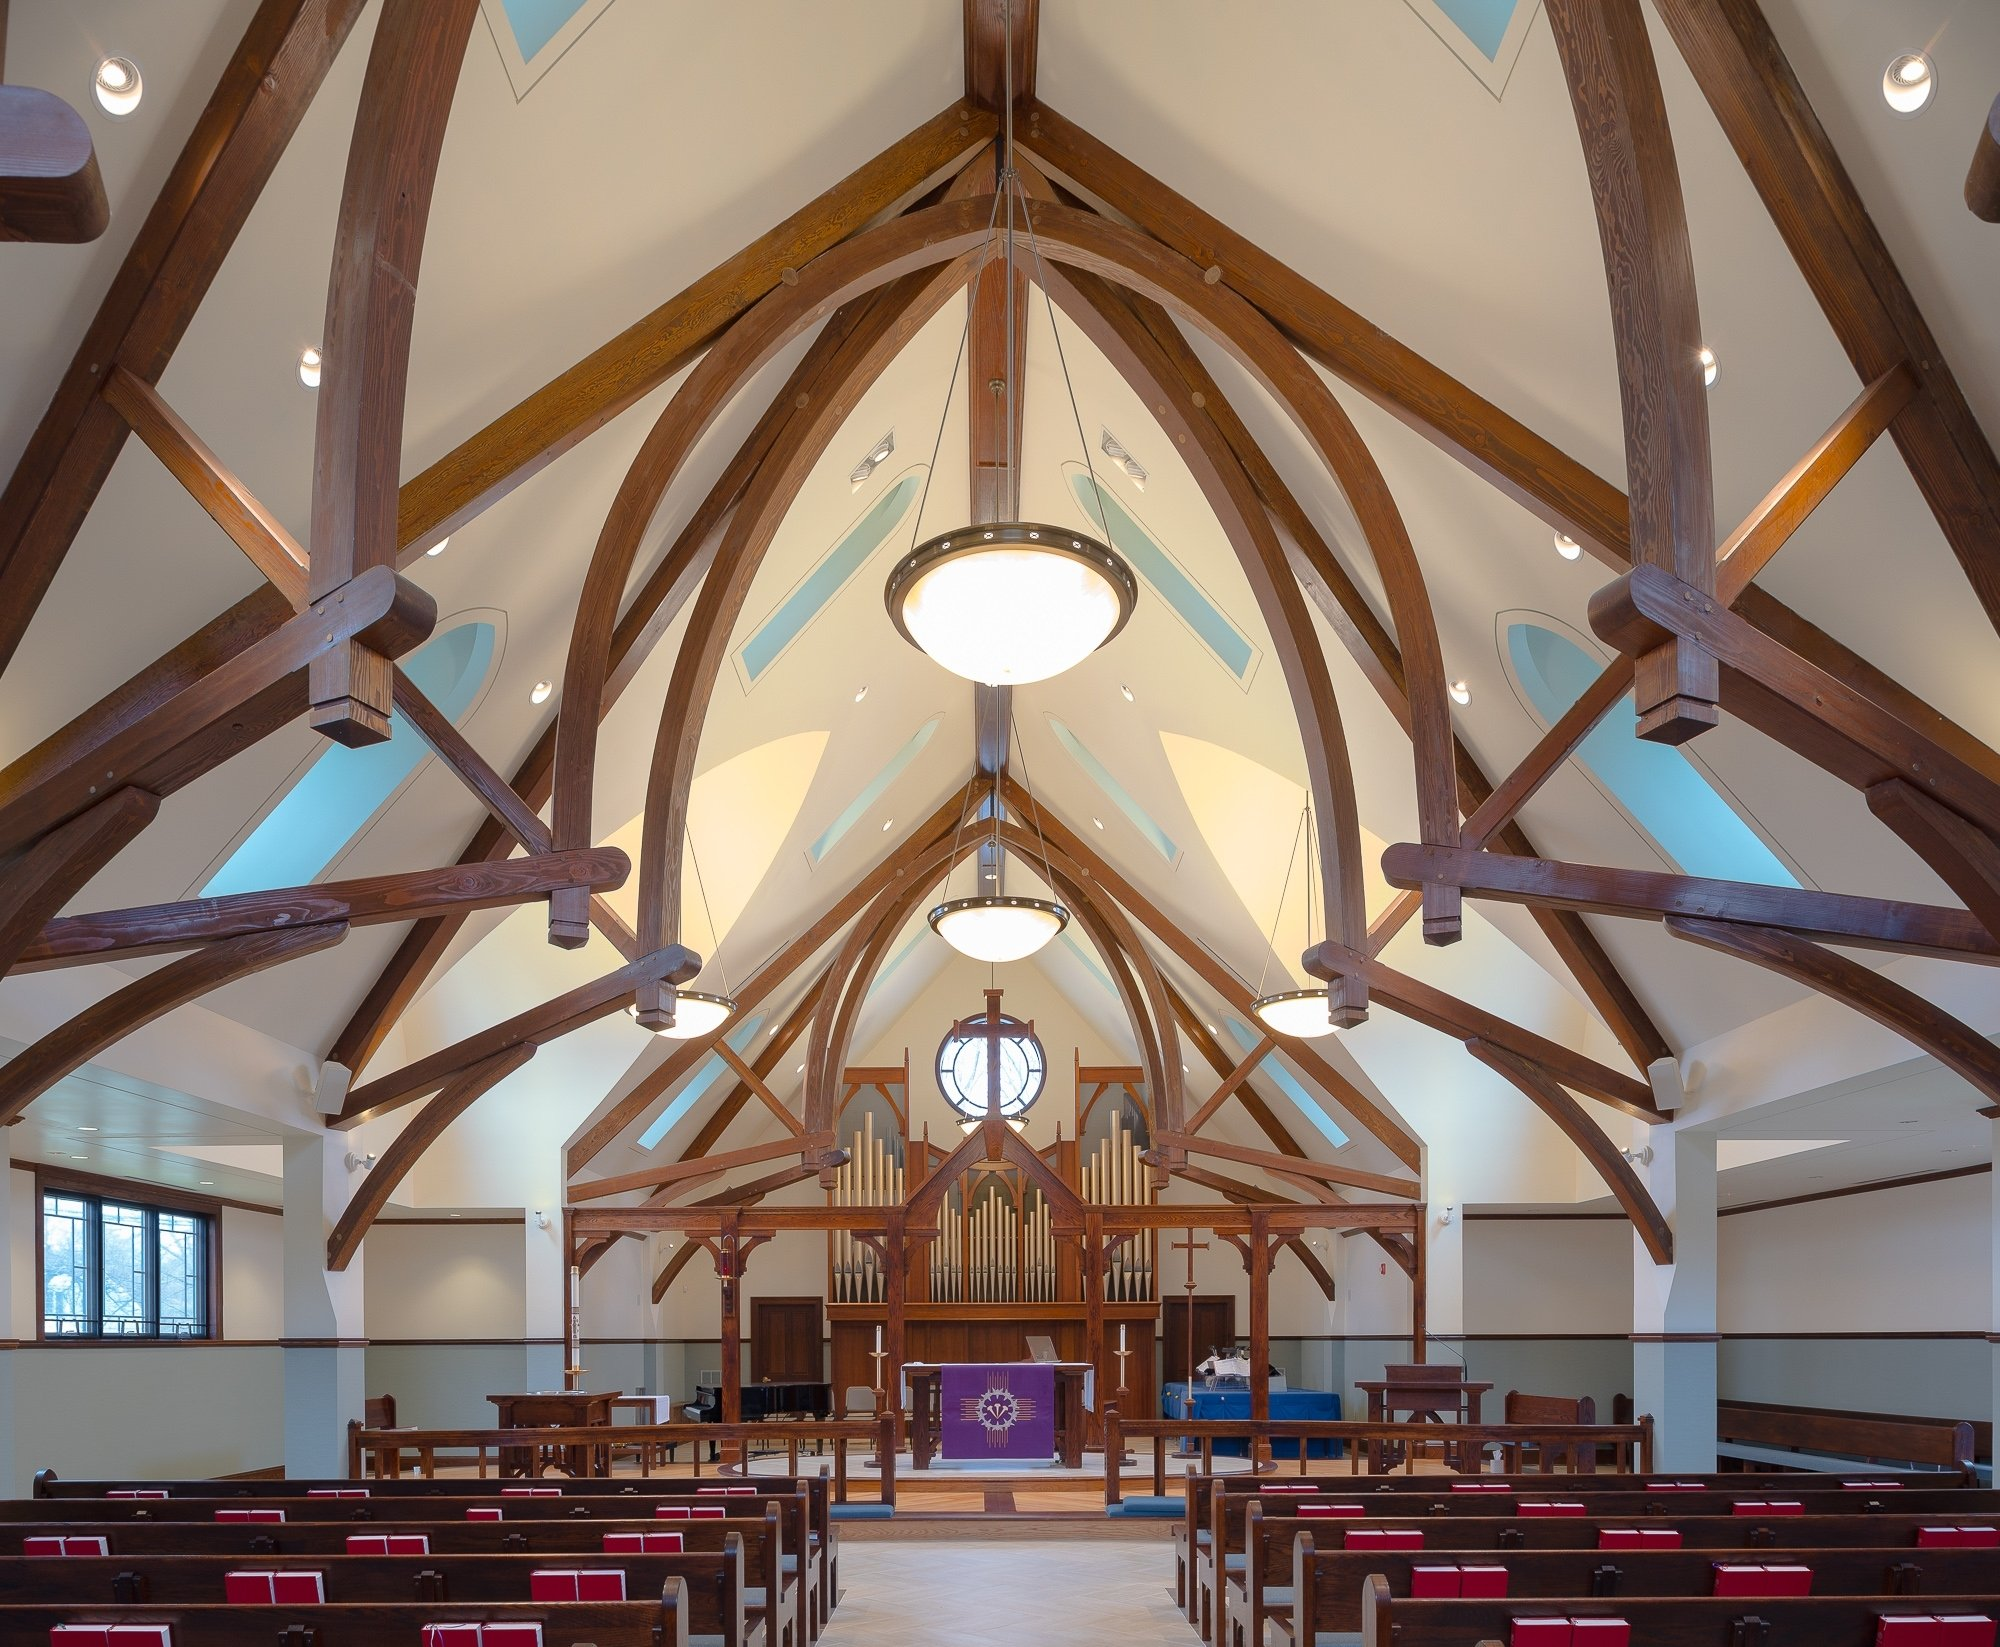 Arched Timber Trusses in Saint Andrew's Church in Ridgefield, CT.